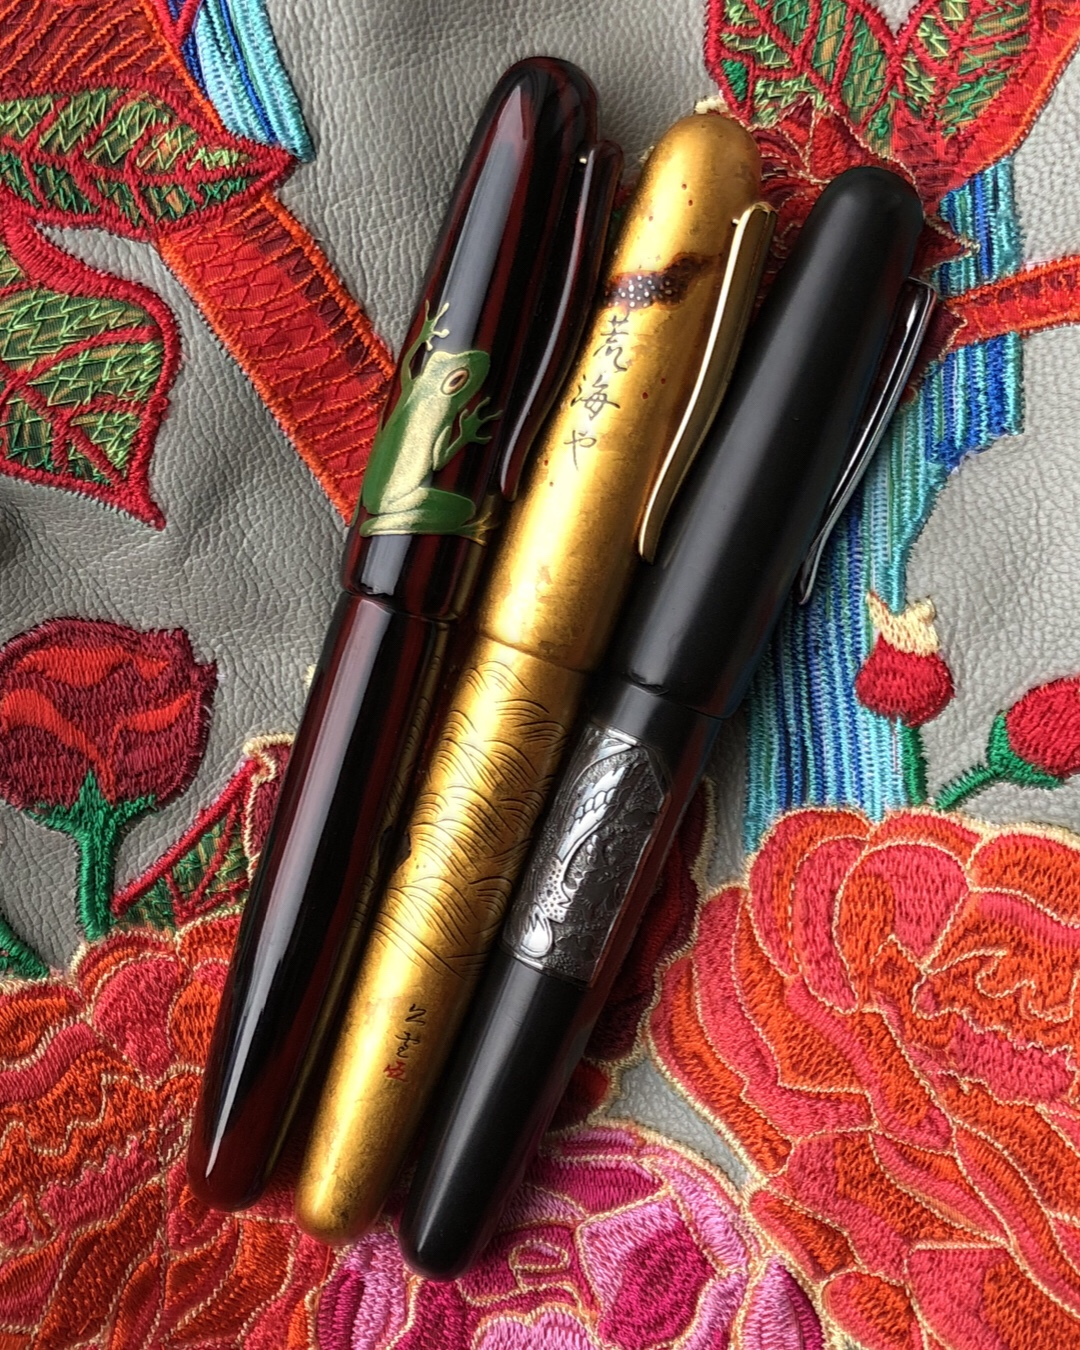 Three Danitrio fountain pens